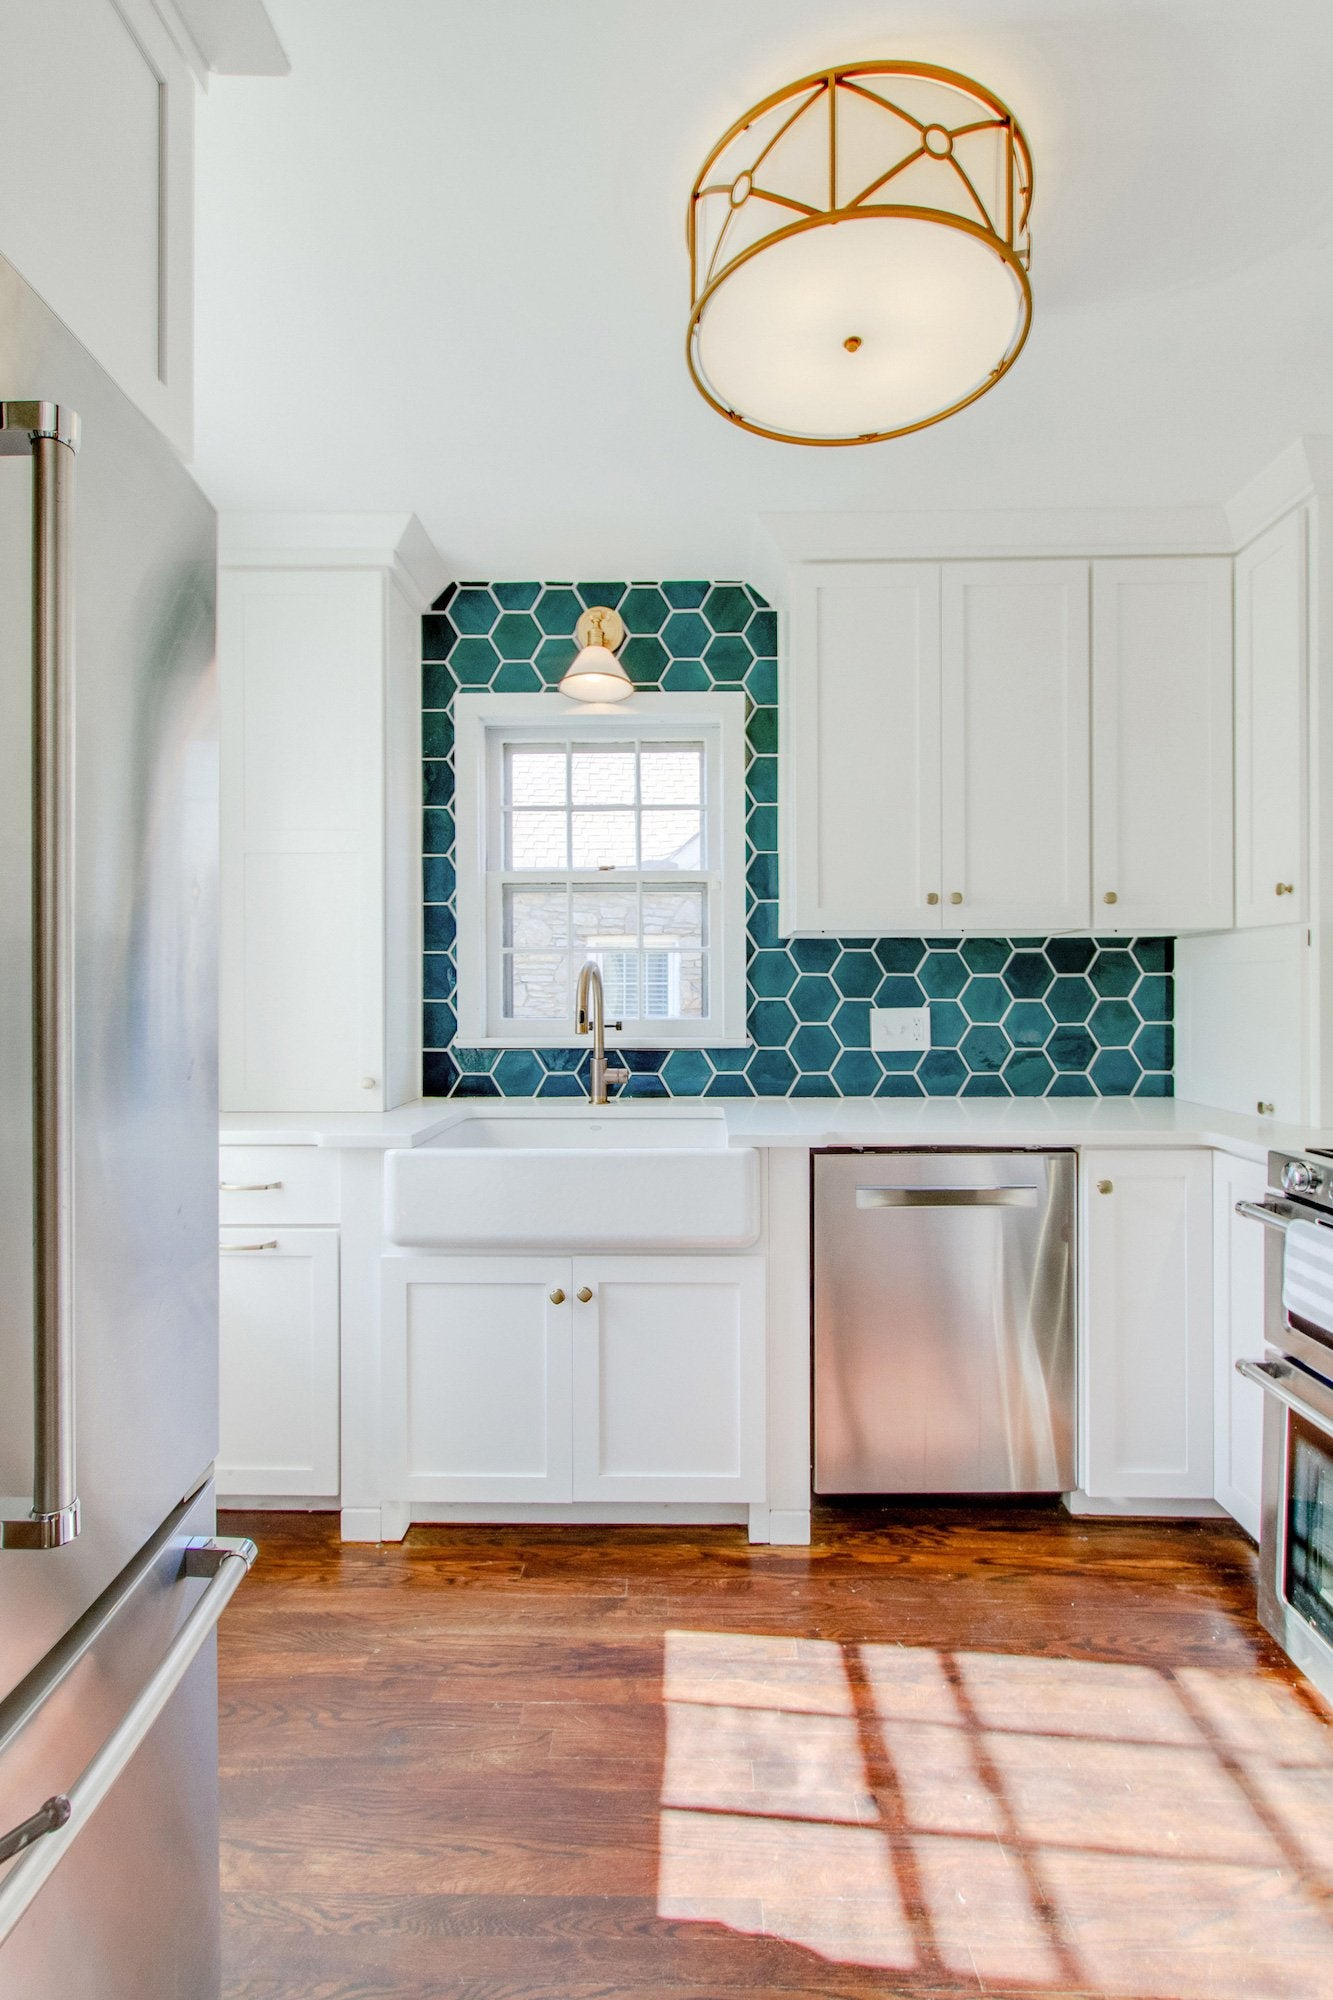 Boho Kitchen Tile Design